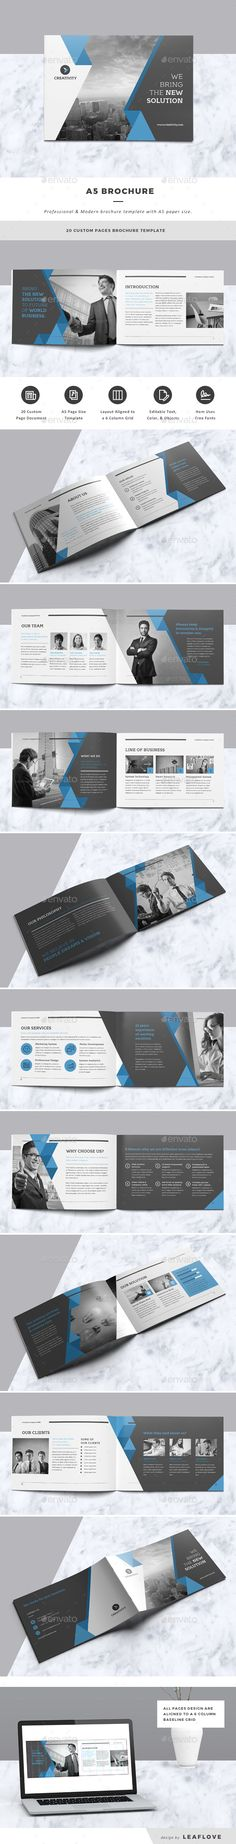 A5 Brochure — InDesign INDD #corporate #indesign • Available here → https://graphicriver.net/item/a5-brochure/18238301?ref=pxcr